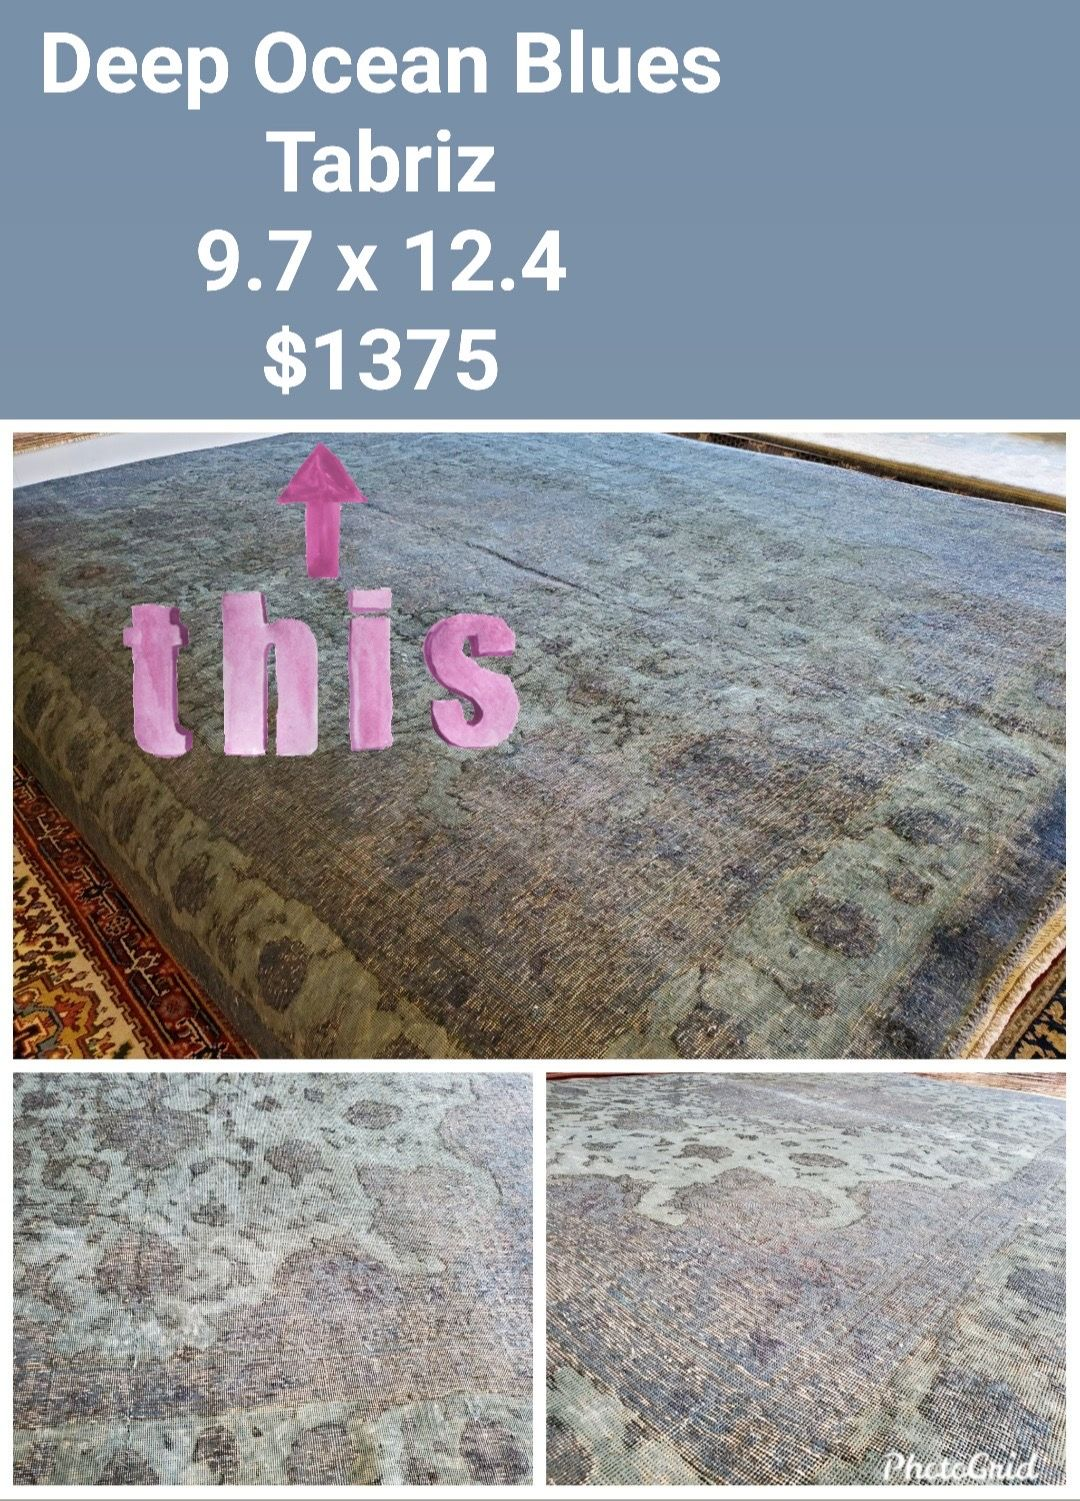 Traditional with a modern/transitional twist! Just in and a steal at $1375!  #nilipourorientalrugs #SpecialSavings #familybusiness #since1972 #fullservice #shoplocal #happycustomer #artyoucantreadon #orientalrug #rug #arearug #naturalfibers #wholesaleprices #directimporting #affordableluxury #functionalrug #practicalrug #appeal #qualityrug #investment #conversationpiece #Lifestyle #rugcleaning #orientalrugcleaning #arearugcleaning